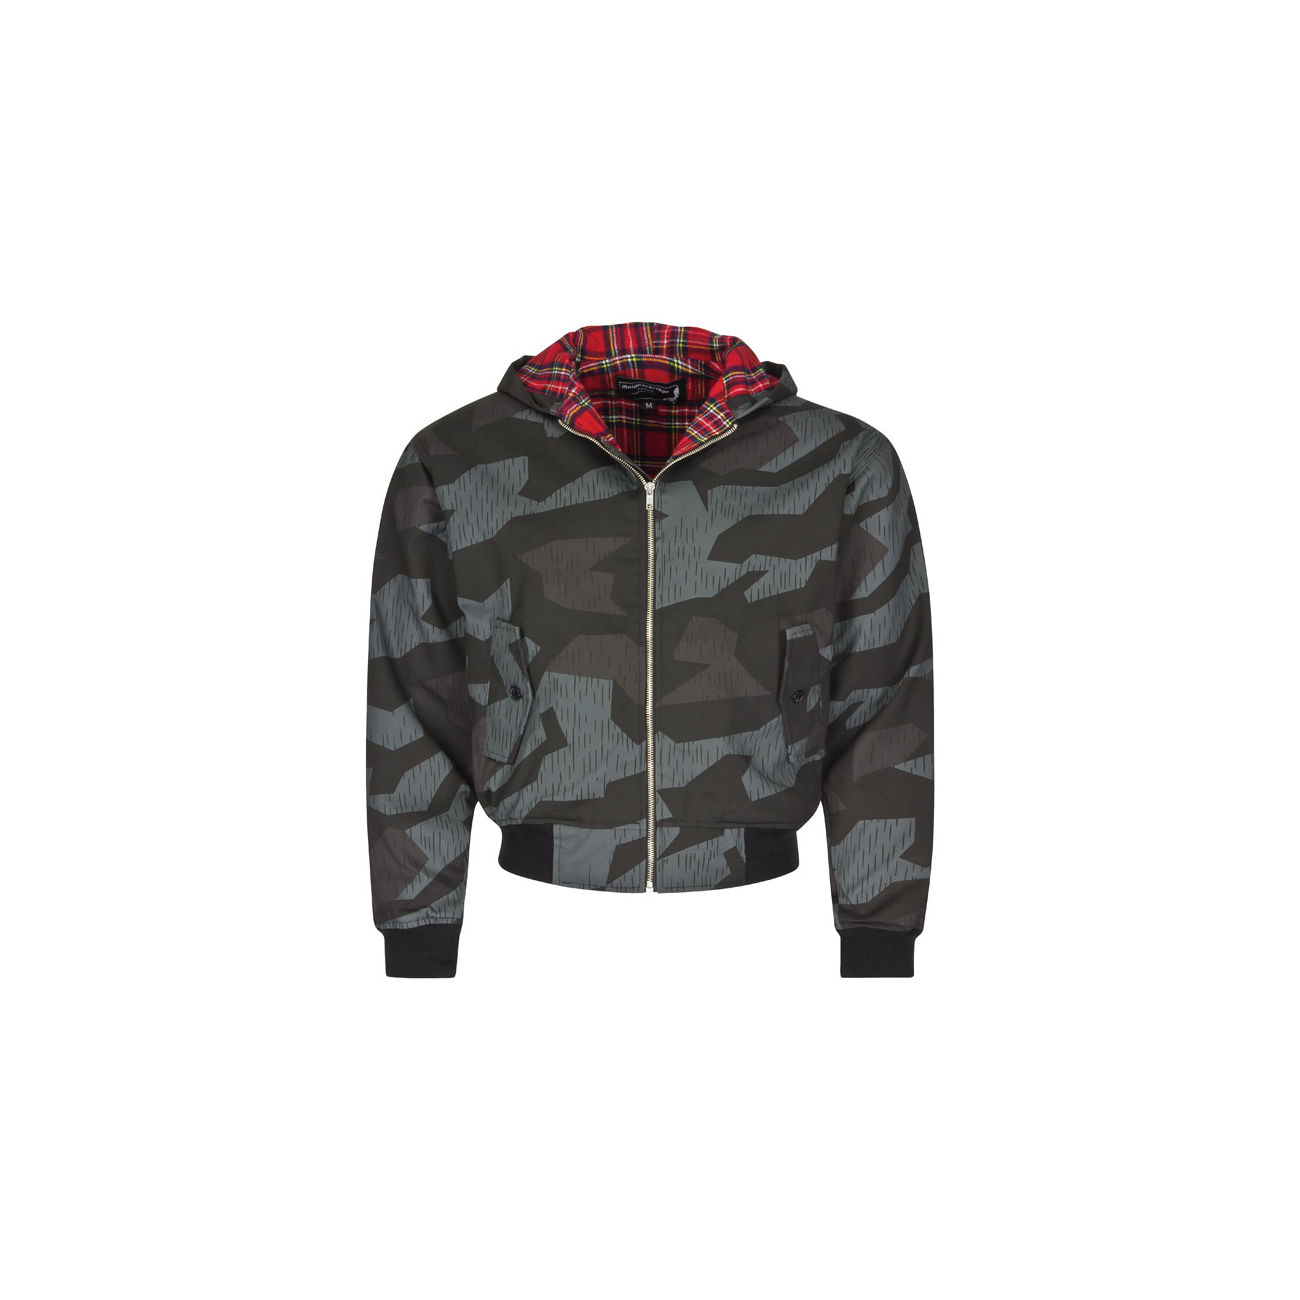 Harrington Jacke, dark-splinter mit Kapuze 0